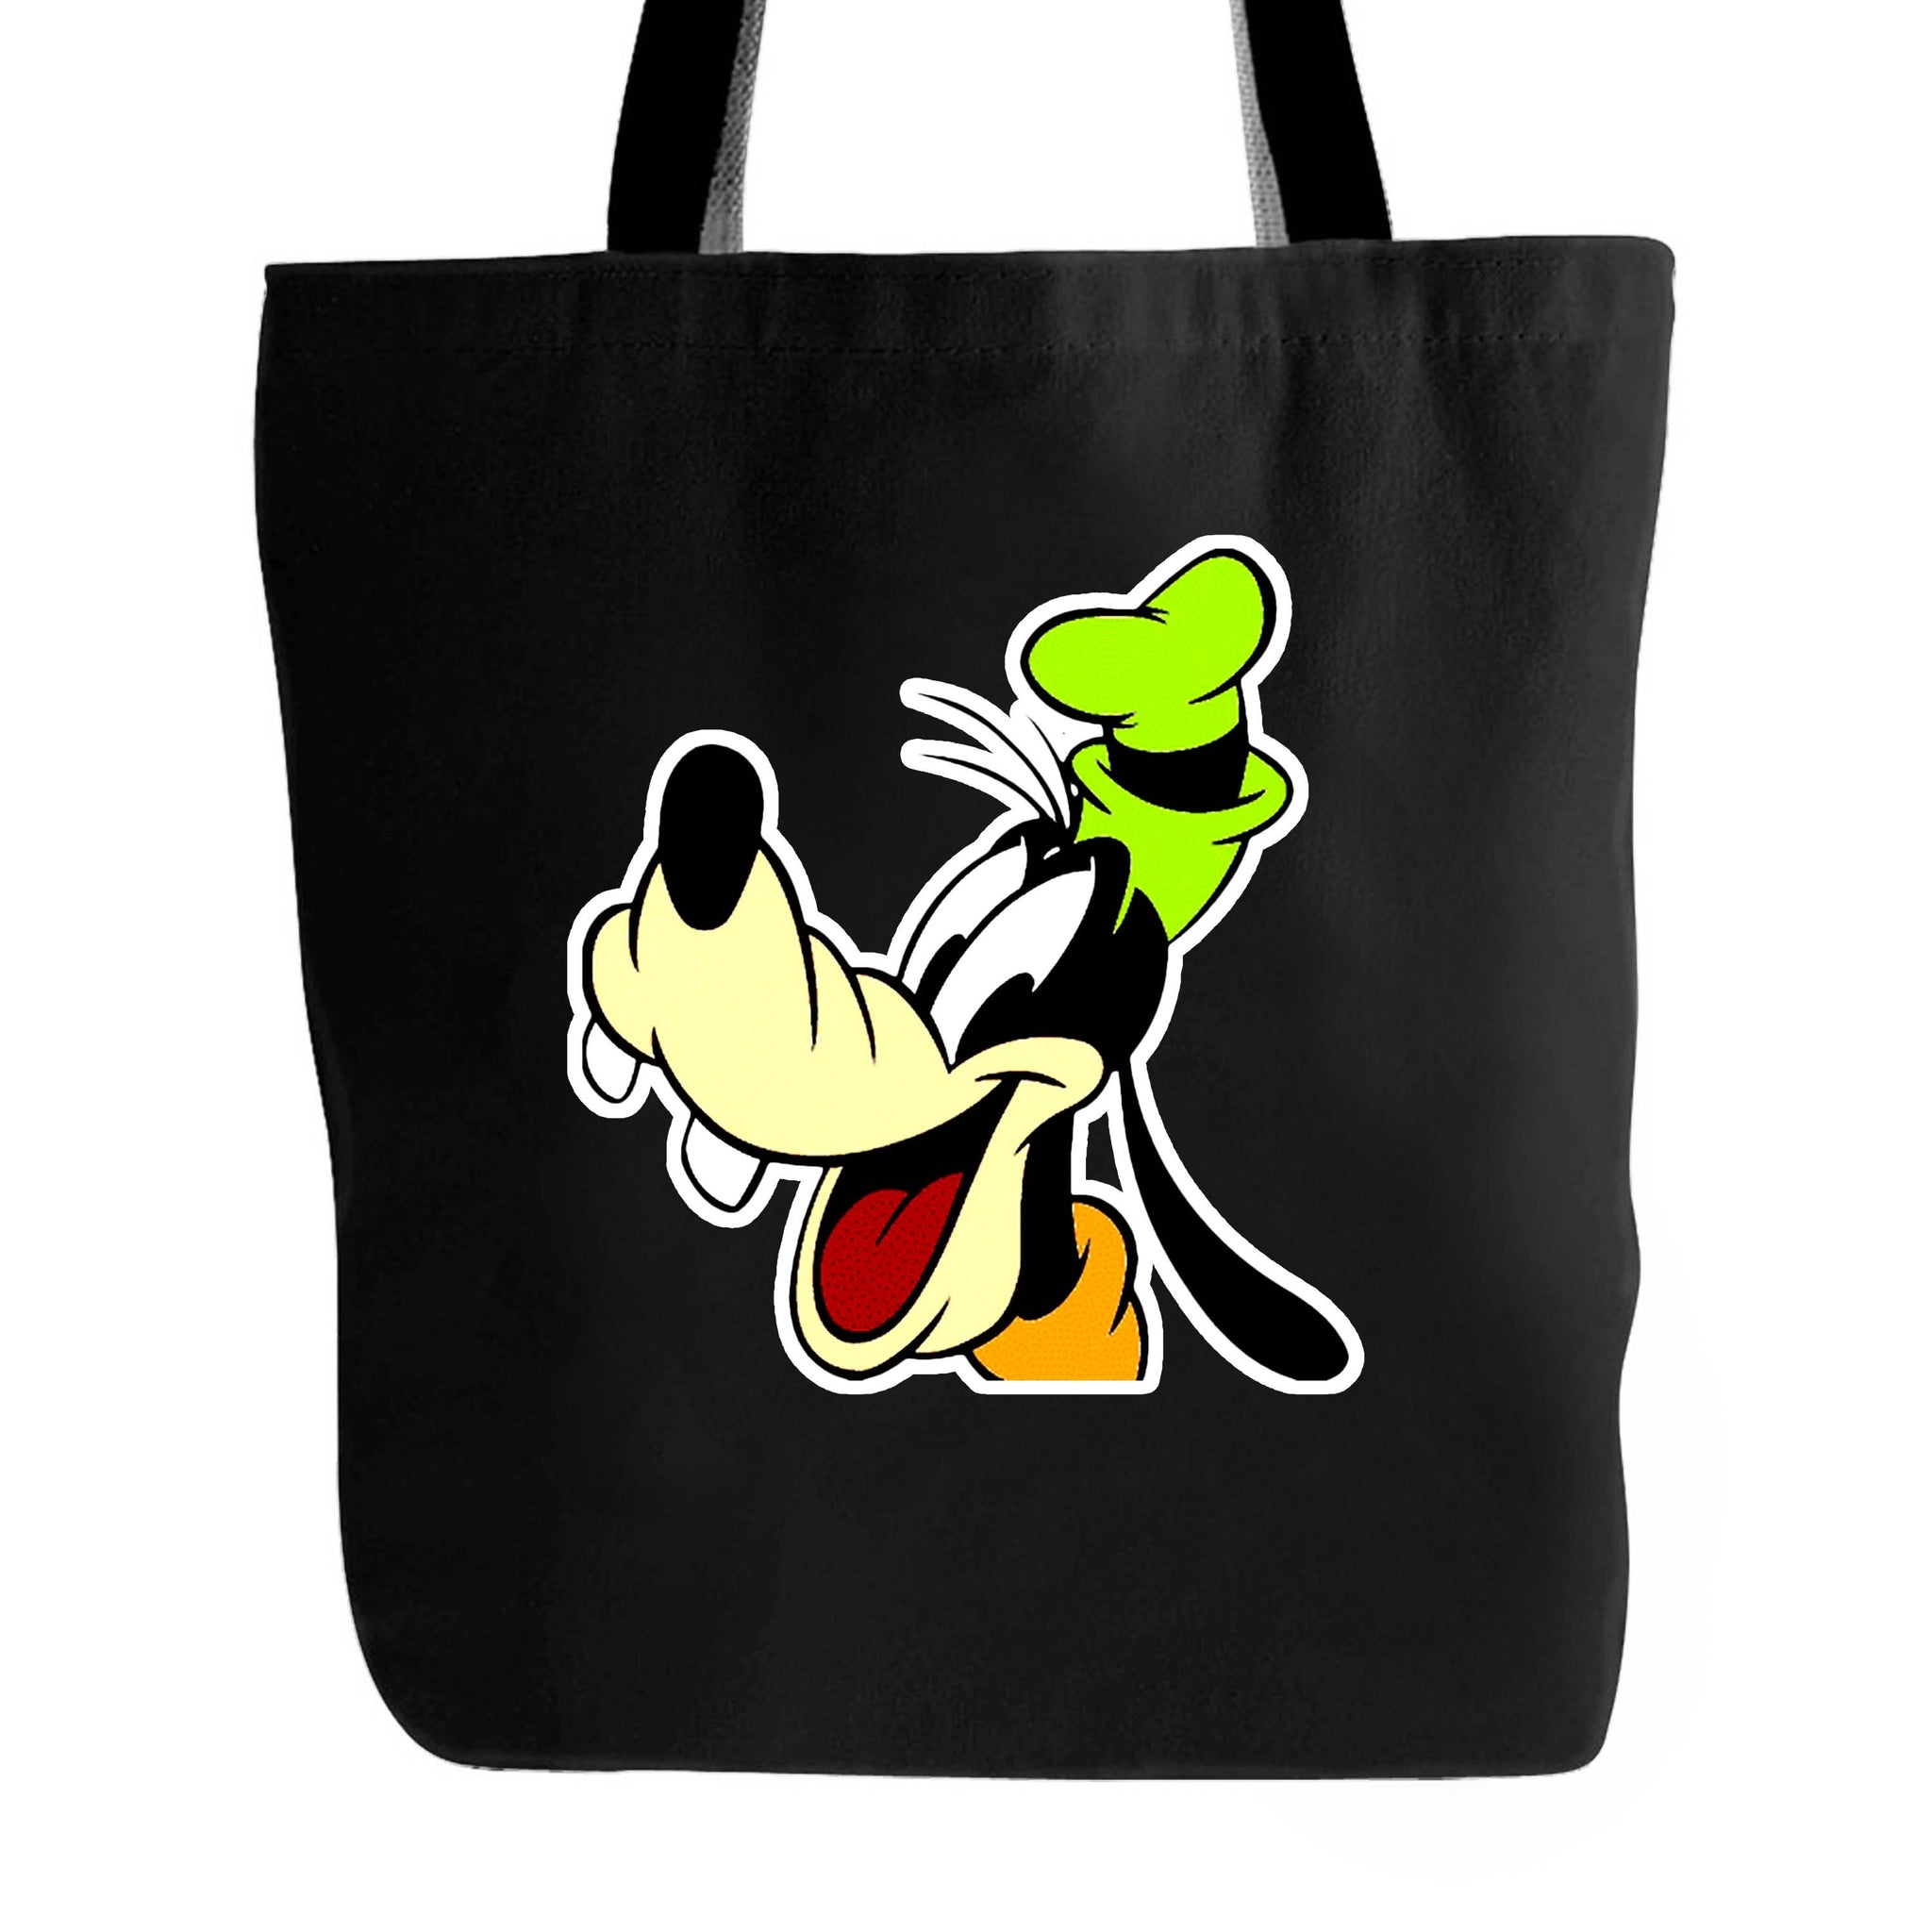 Goofy Face Classic Disney Gift Ideas Tote Bag